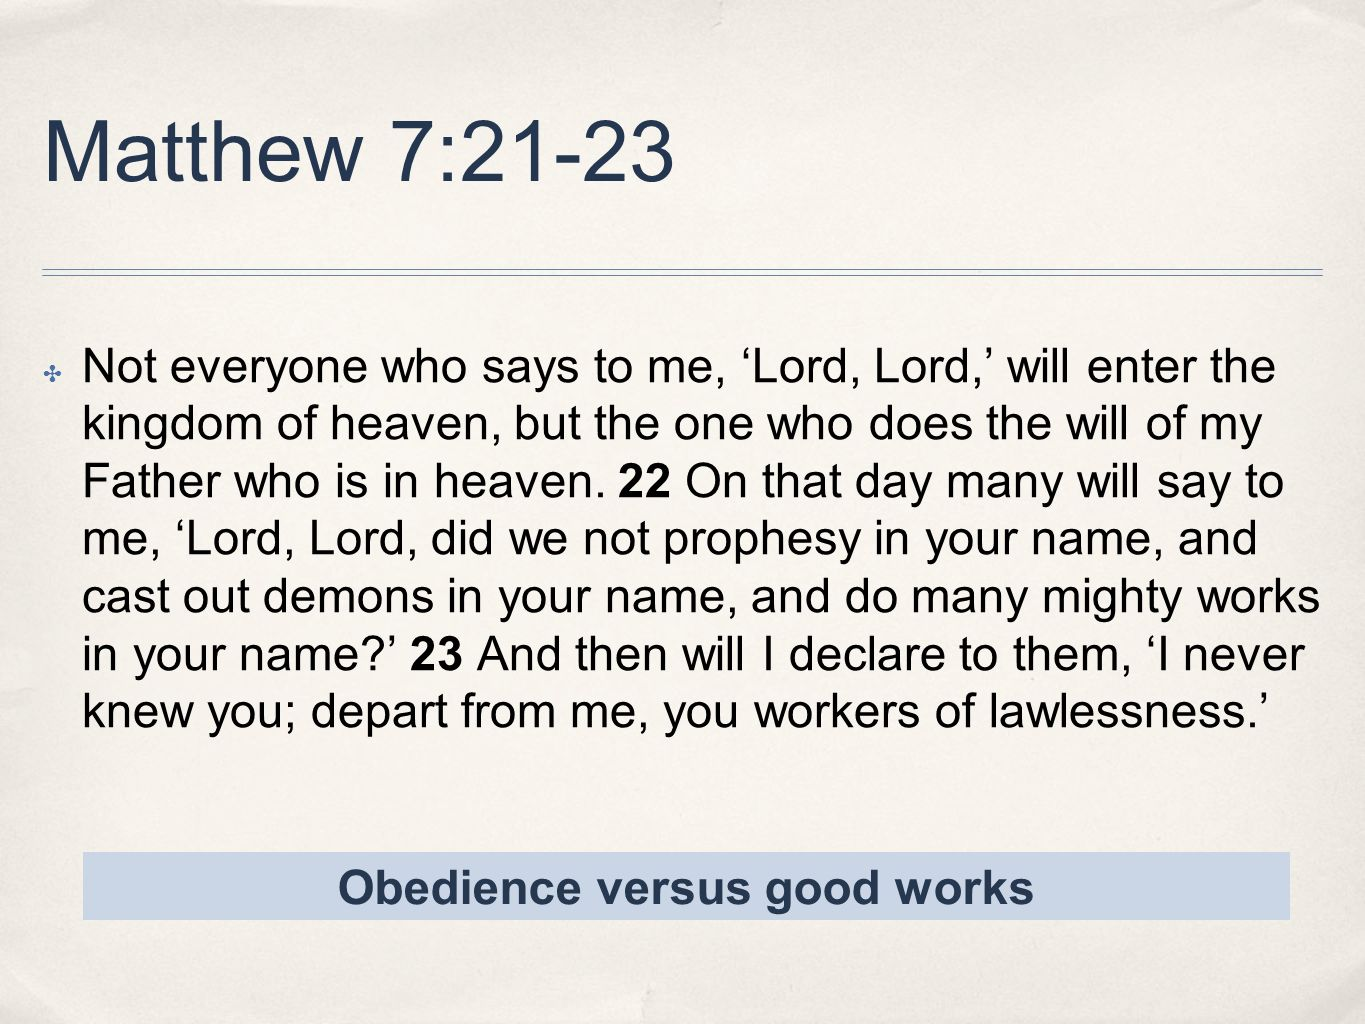 Obedience versus good works